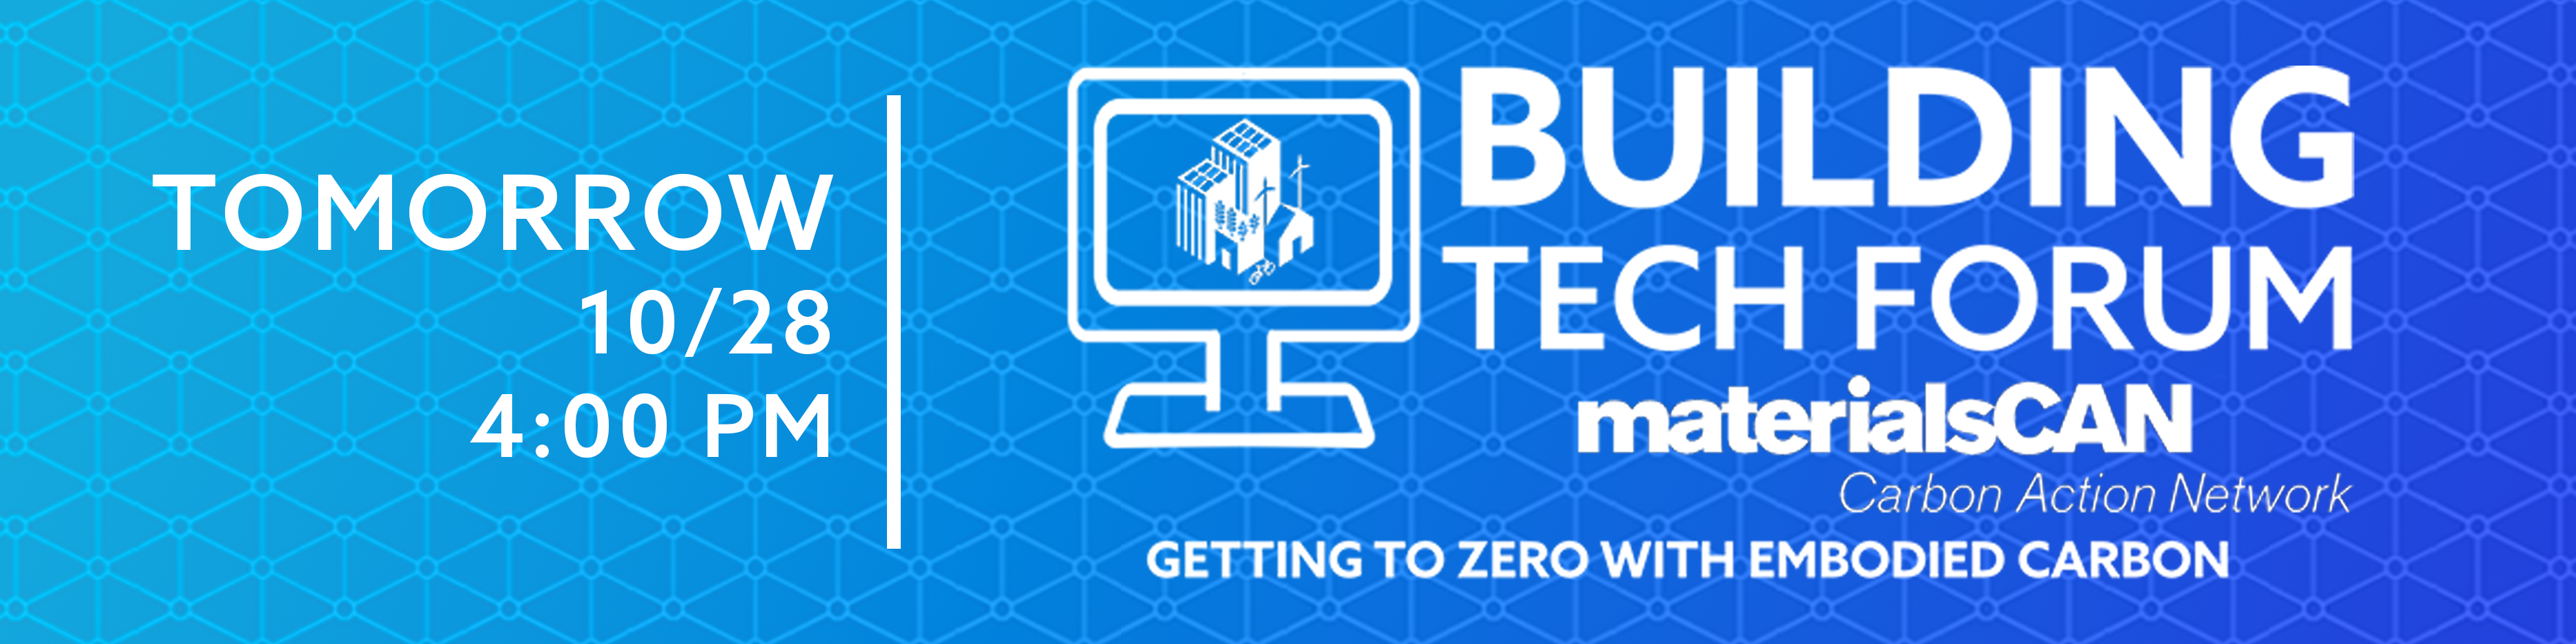 Tomorrow, 10/28 at 4:00 PM:Building Tech Forum materialsCAN: Getting to Zero with Embodied Carbon